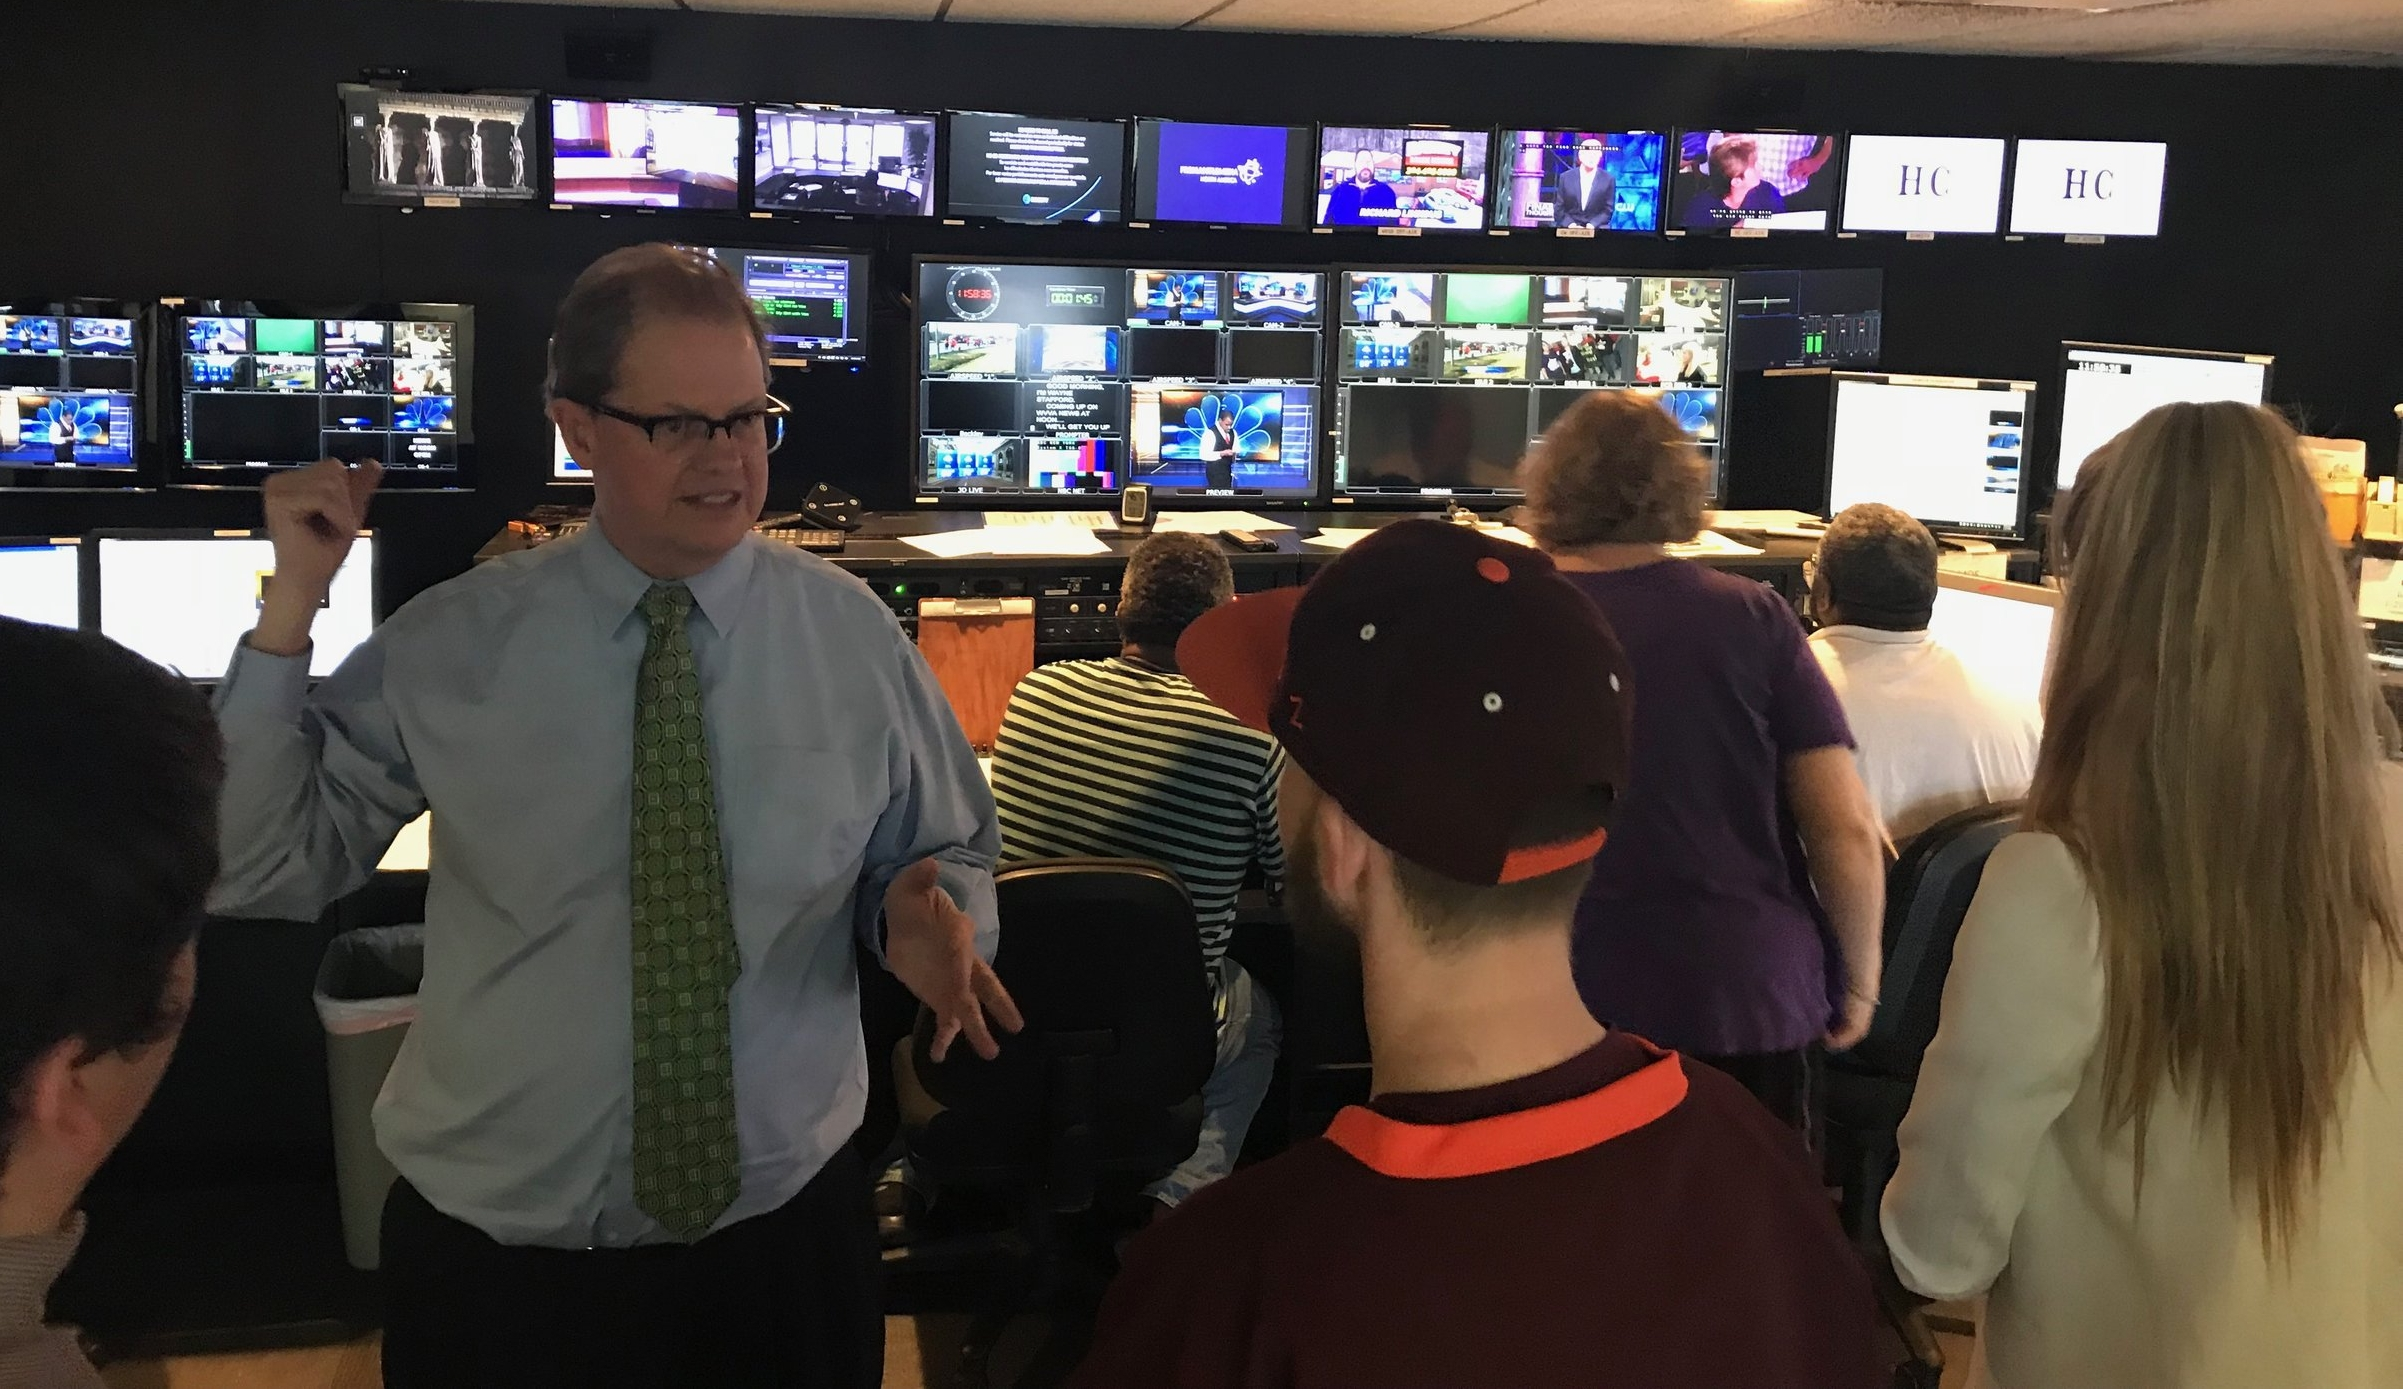 WVVA-TV News Director Ken White walks through the noon news from the station's control room.